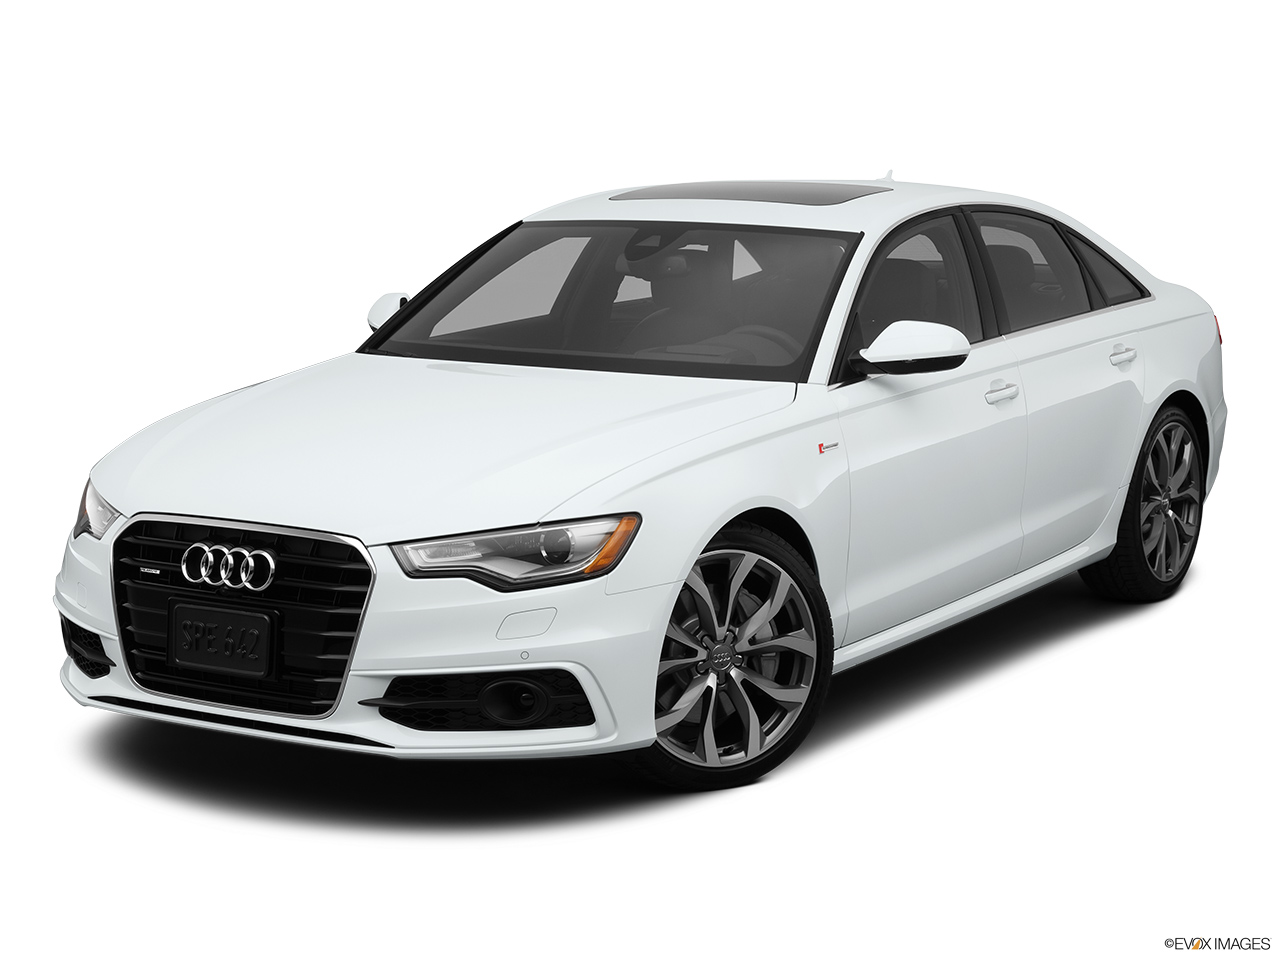 2014 audi a6 sedan quattro 3 0t prestige. Black Bedroom Furniture Sets. Home Design Ideas